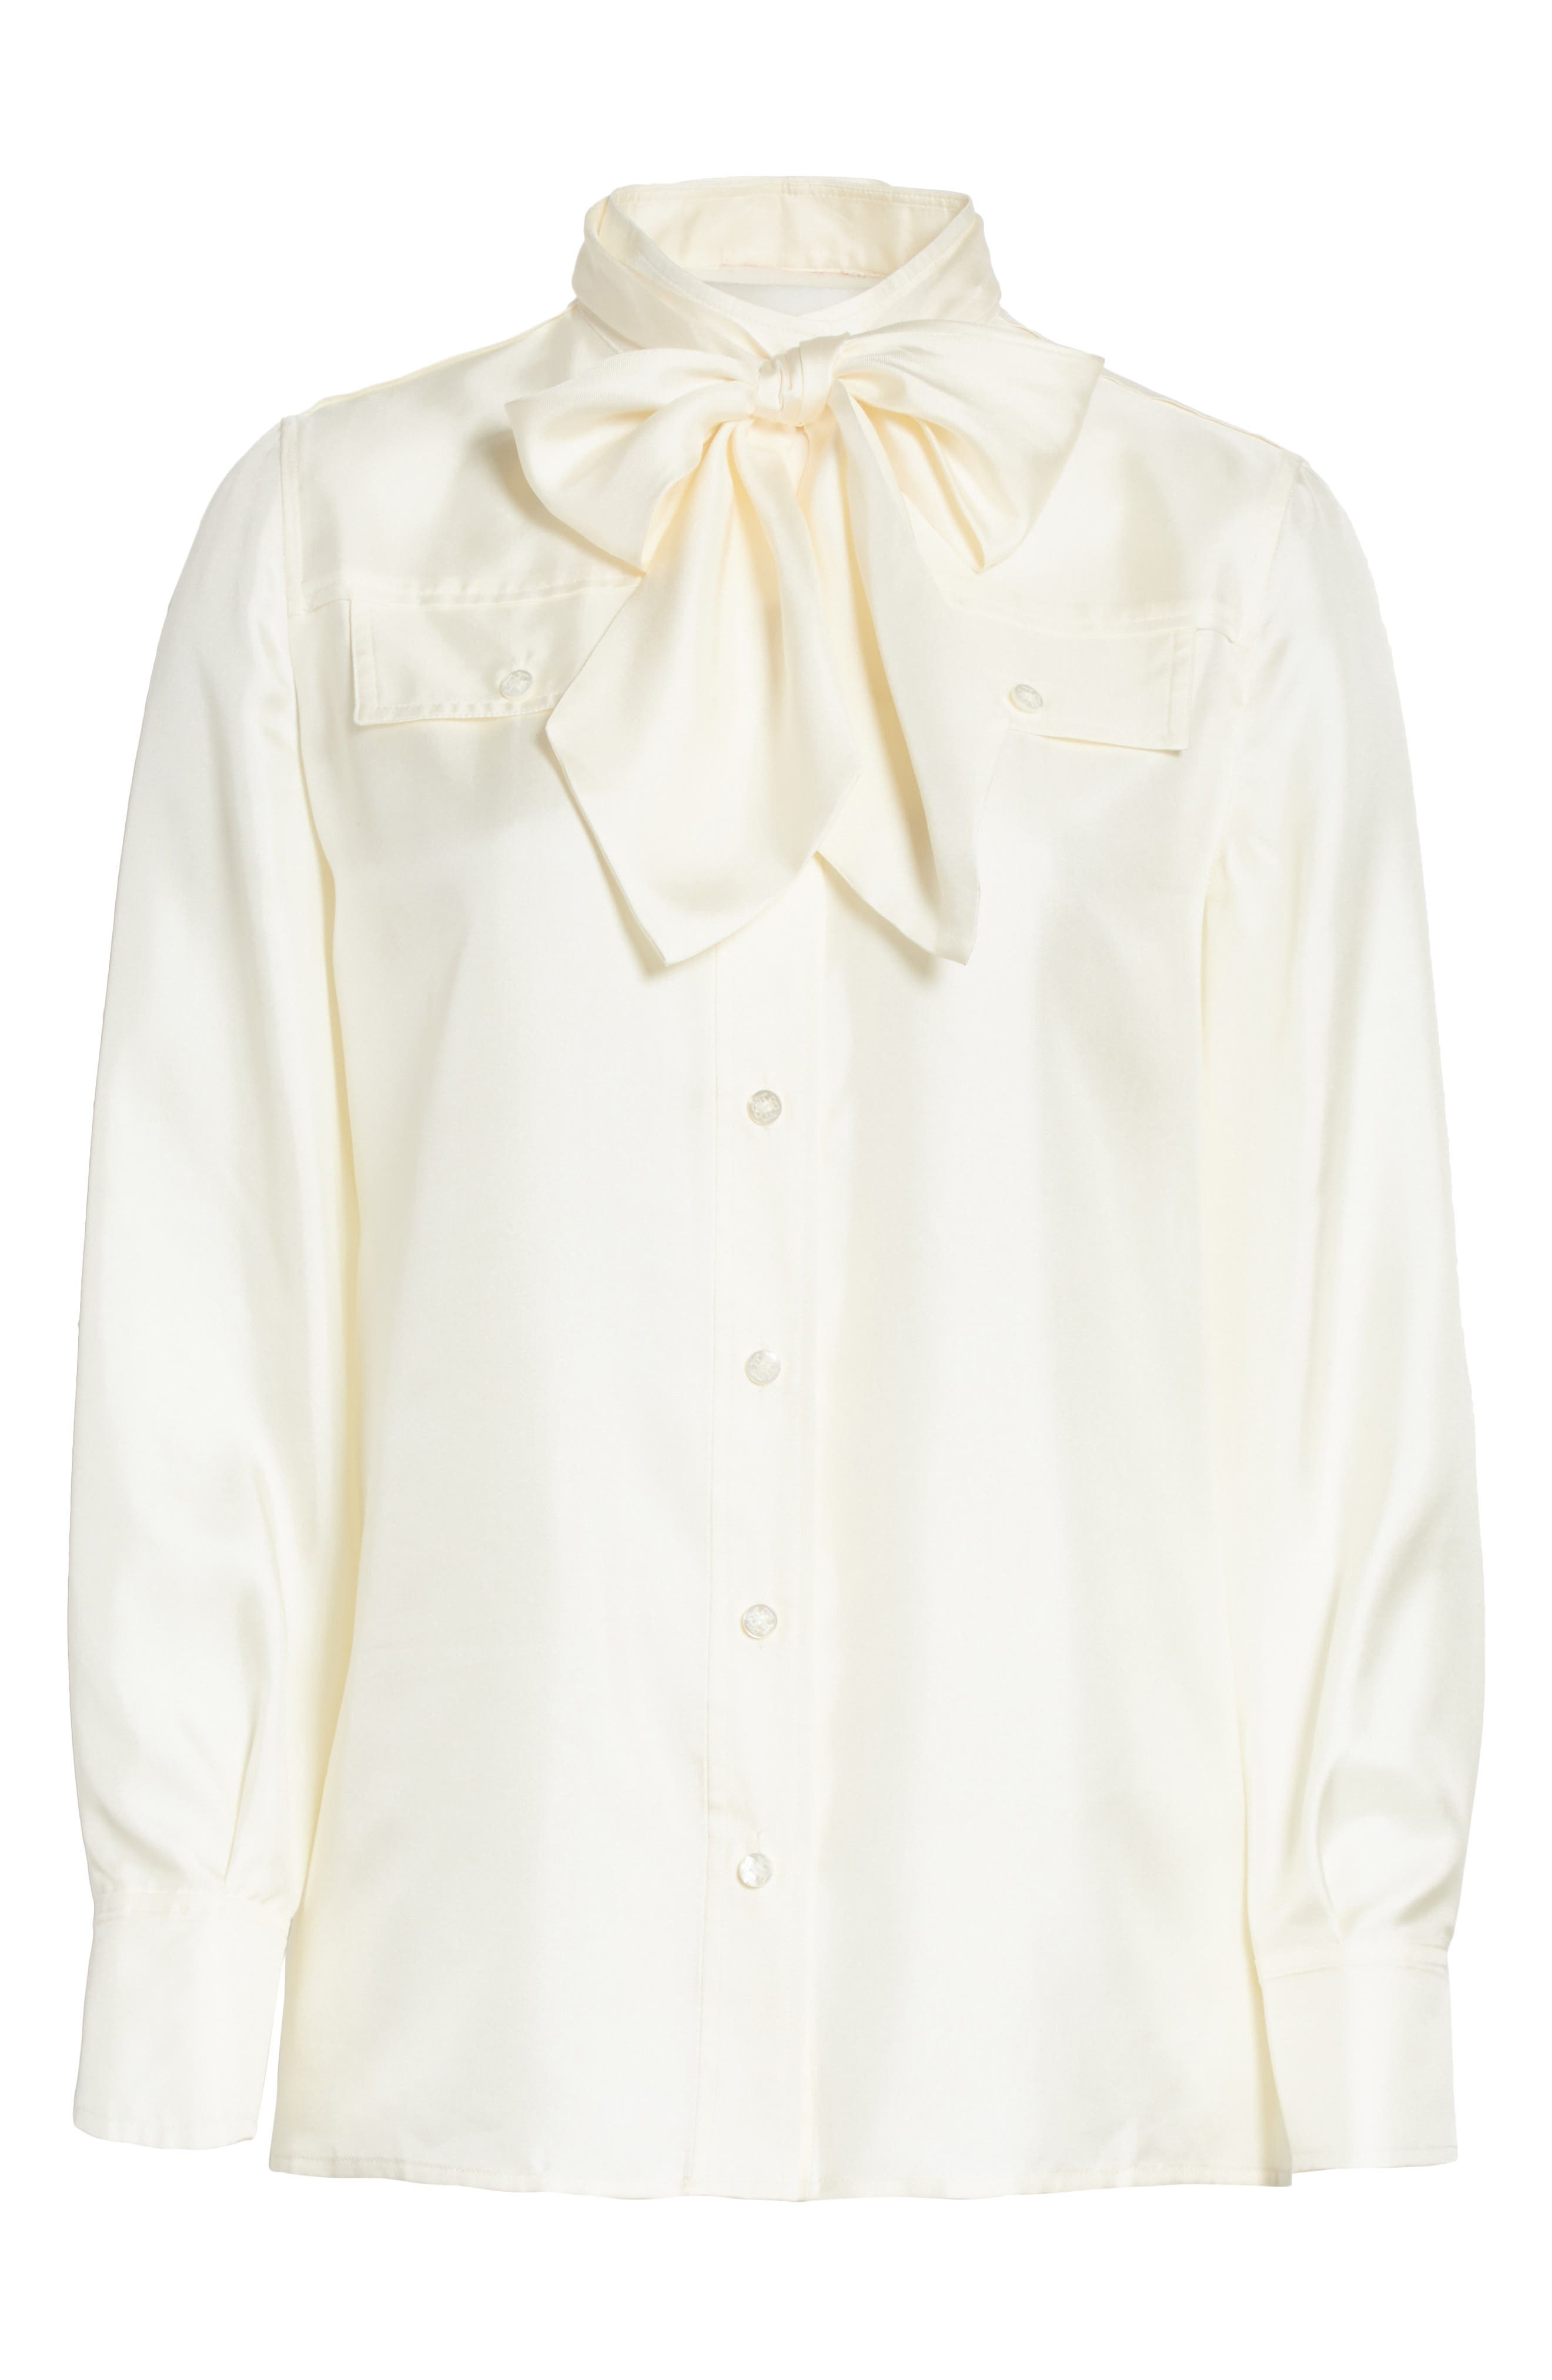 TORY BURCH,                             Holly Tie Neck Silk Blouse,                             Alternate thumbnail 6, color,                             904